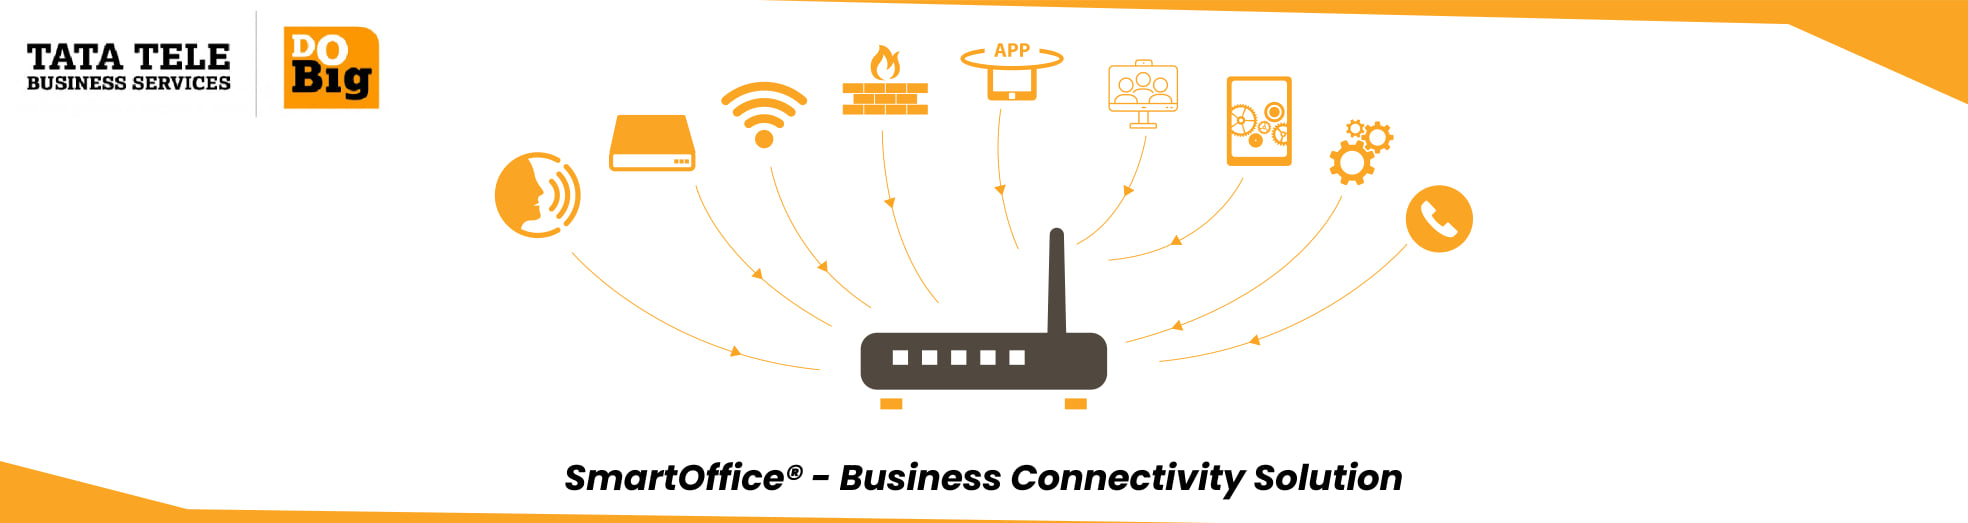 SmartOffice® – Tata Tele Business Services